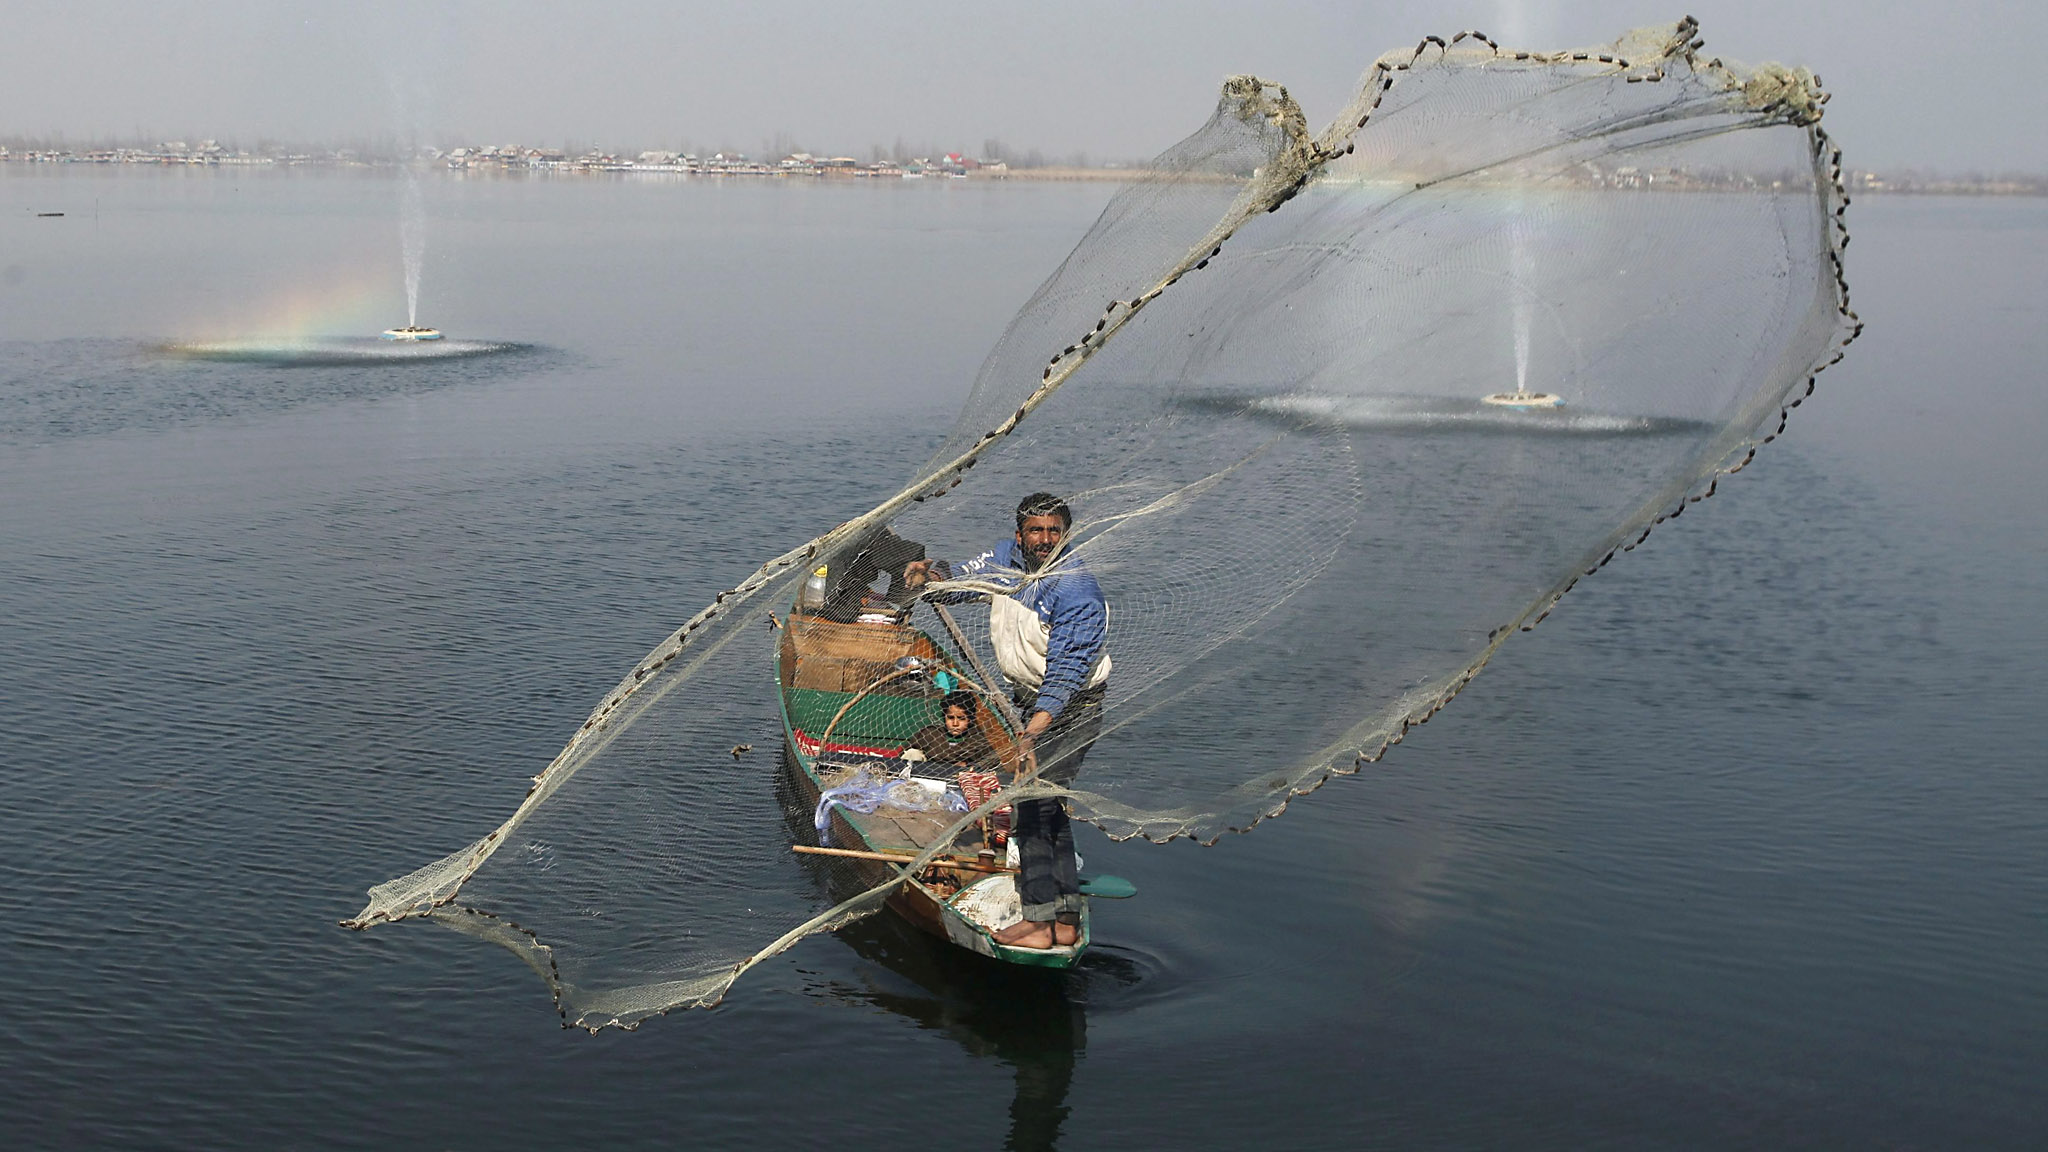 Daily Life in Srinagar ...epa05167710 A Kashmiri fisherman on Dal Lake in Srinagar, the summer capital of Indian Kashmir, 18 February 2016. The temperature in the Kashmir valley has risen and people are out enjoying the warmer weather.  EPA/FAROOQ KHAN